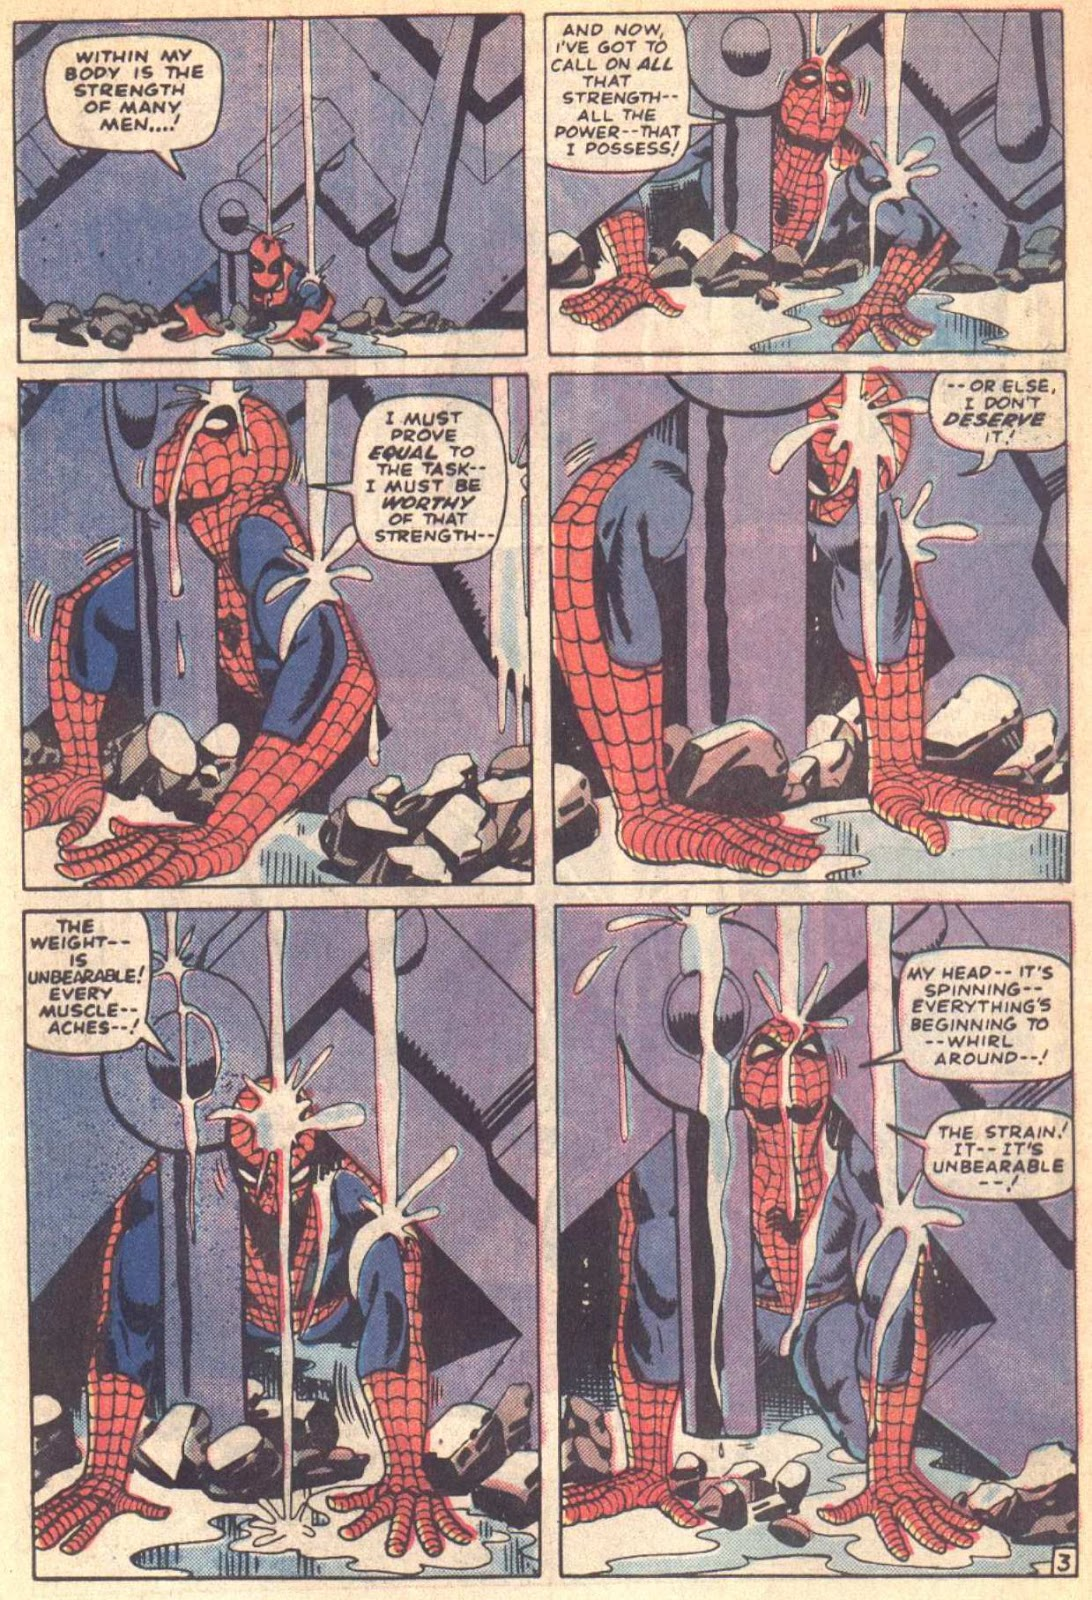 The Scene With Spider Man Struggling Under Wreckage Has Been Adopted In Other Stories Roger Stern Viewed Juggernaut As His Version Of Great